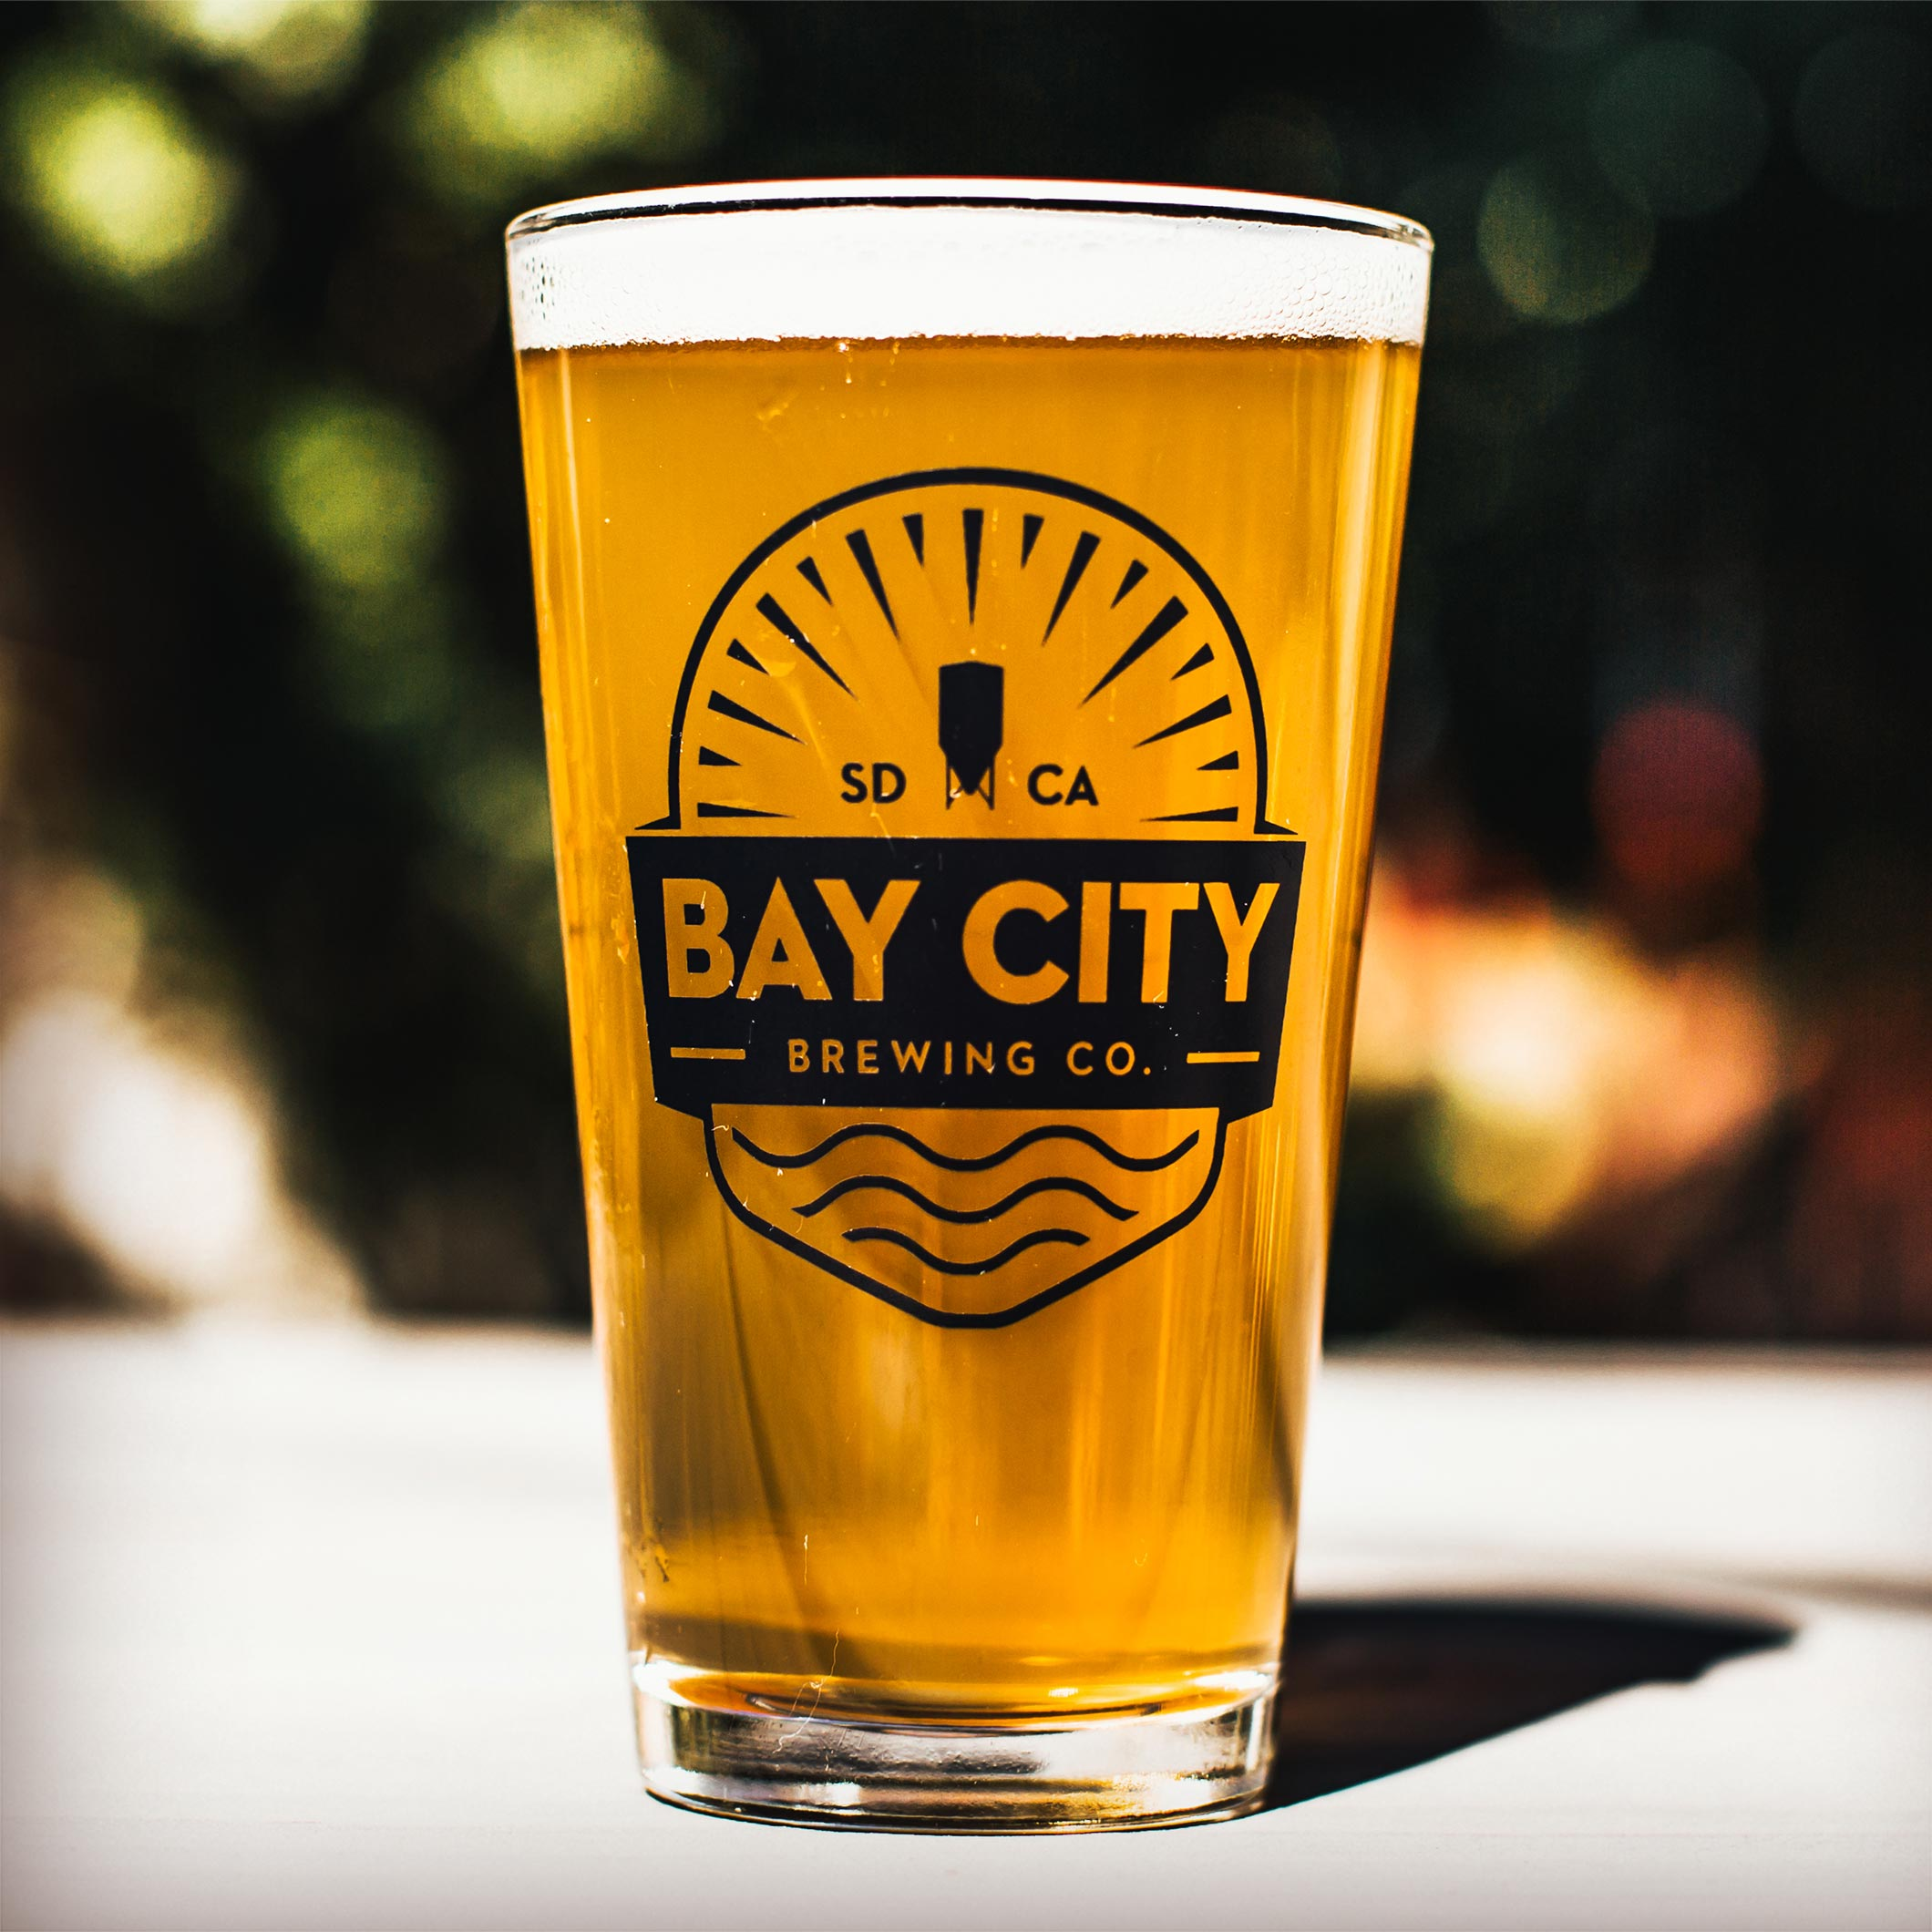 https://baycitybrewingco.com/wp-content/uploads/2019/03/bay_city_72andhoppy_glass_2x-1.jpg